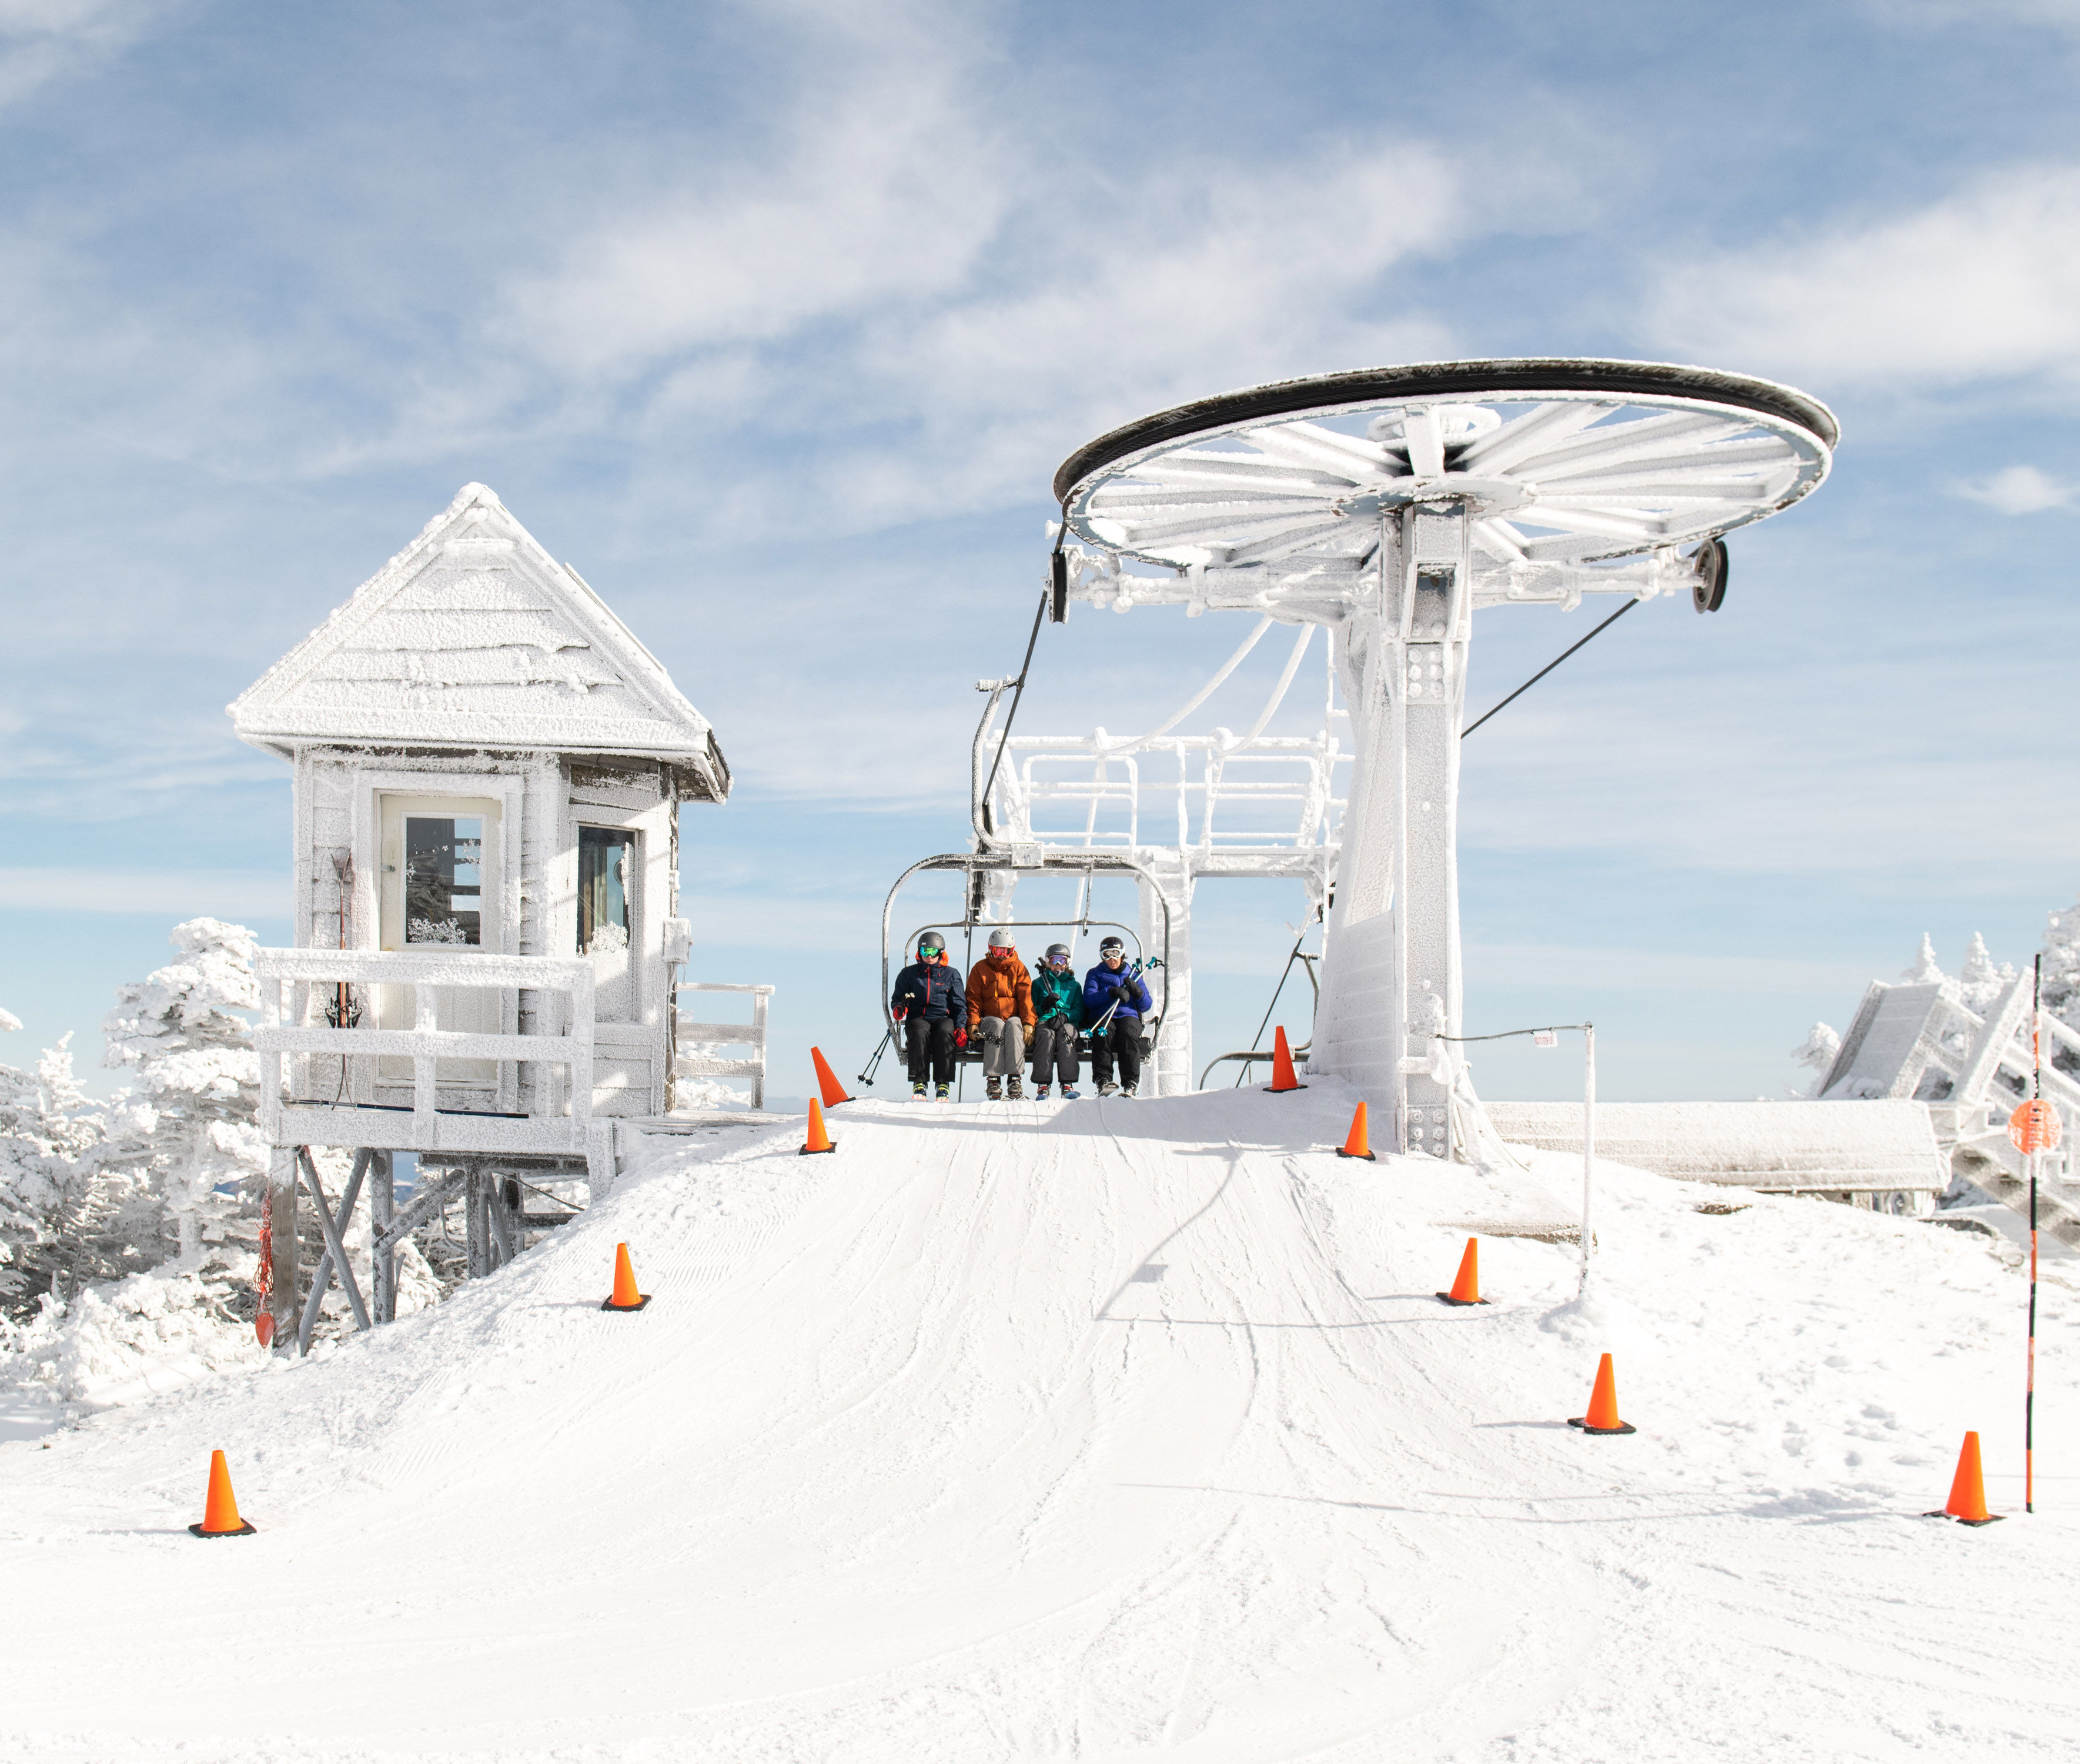 Students riding a ski lift covered in a fresh coat of snow